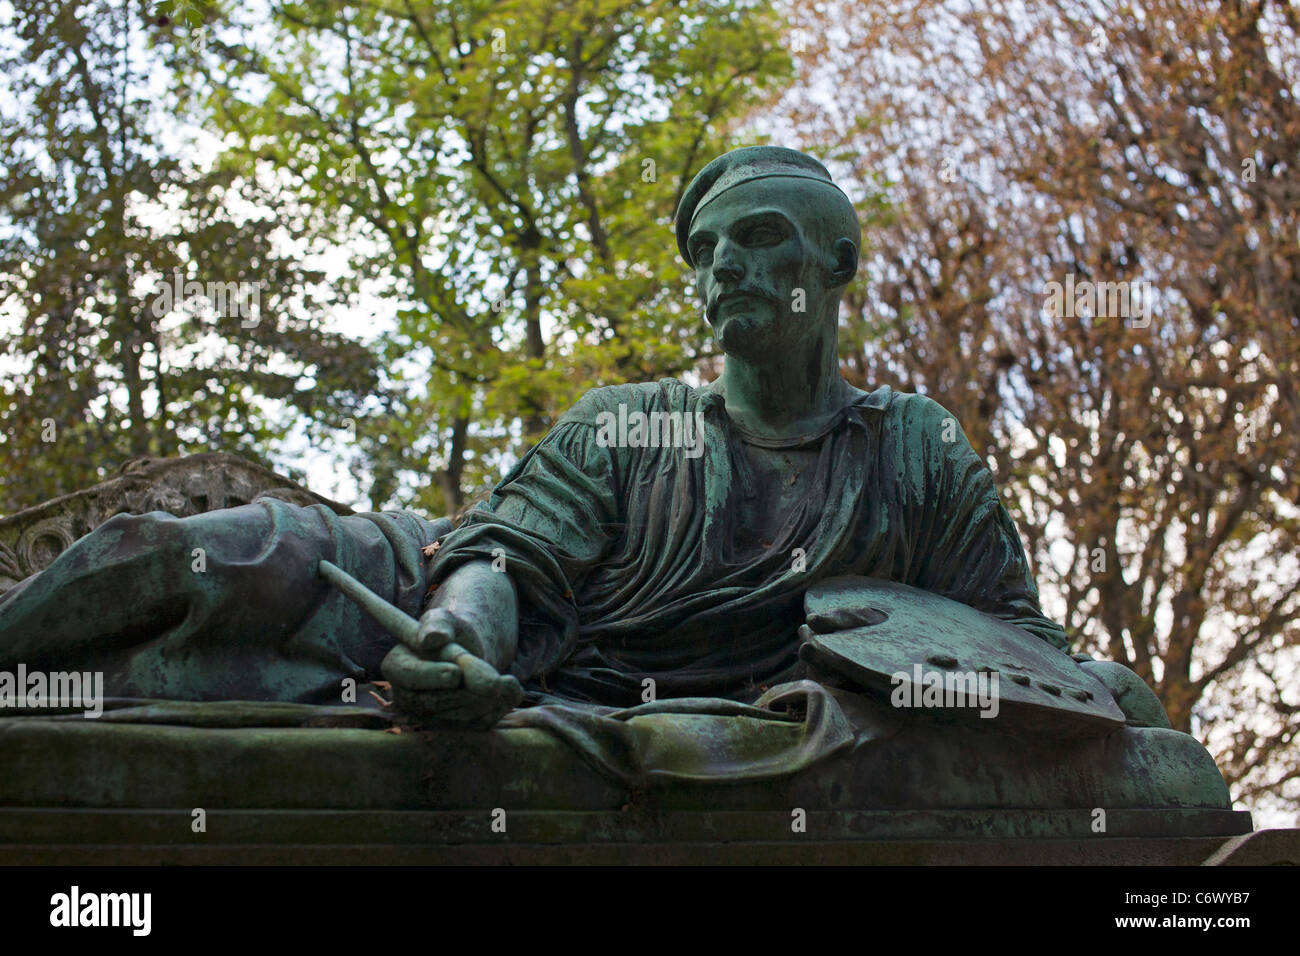 Grave of Gericault at the Pere Lachaise Cemetery Paris France - Stock Image